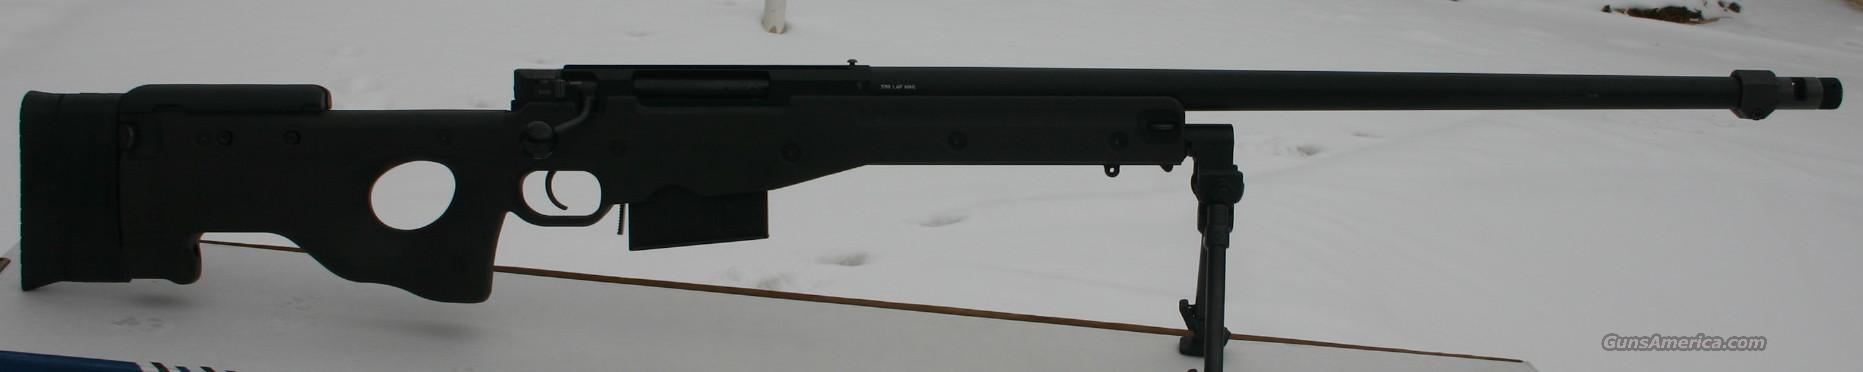 AWSM  338 Lapua  Guns > Rifles > Accuracy International Rifles